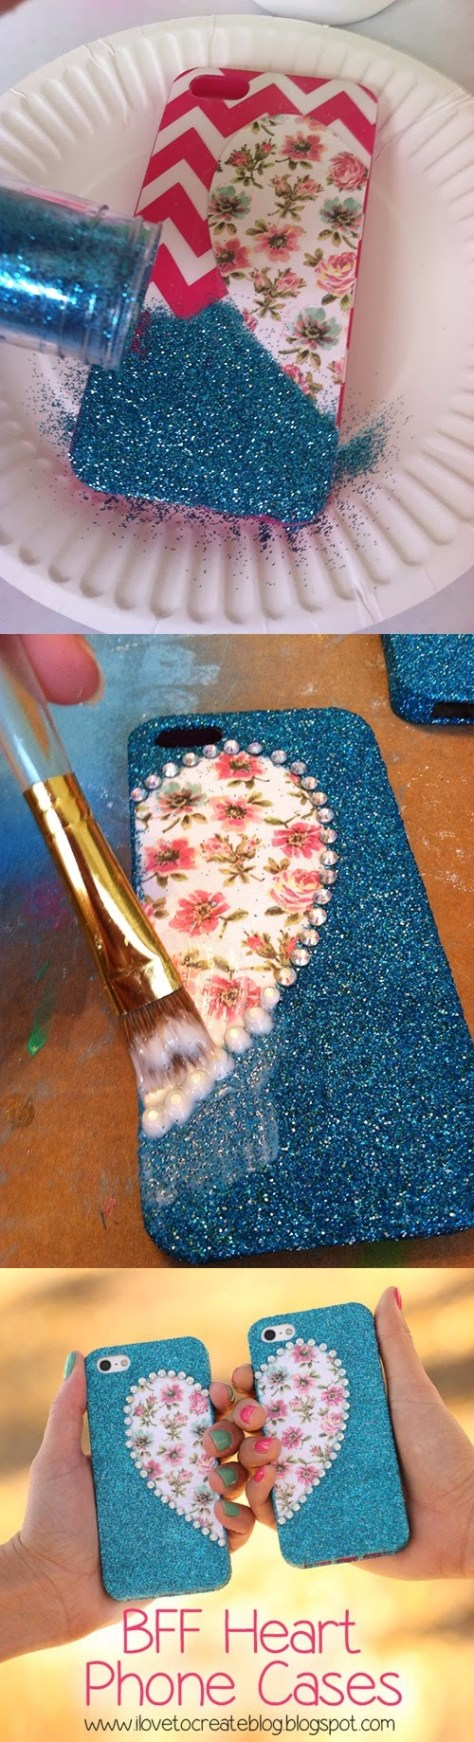 DIY BFF Heart Matching Phone Cases